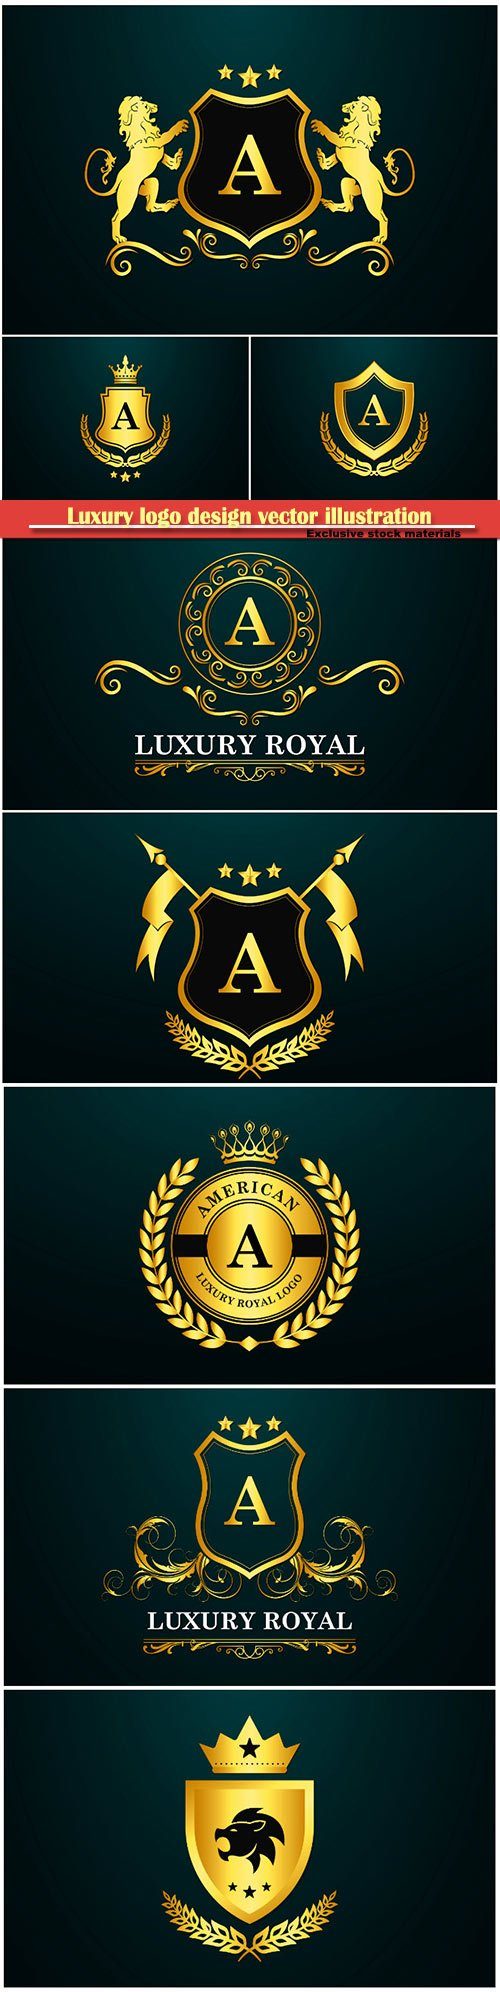 Luxury logo design vector illustration template